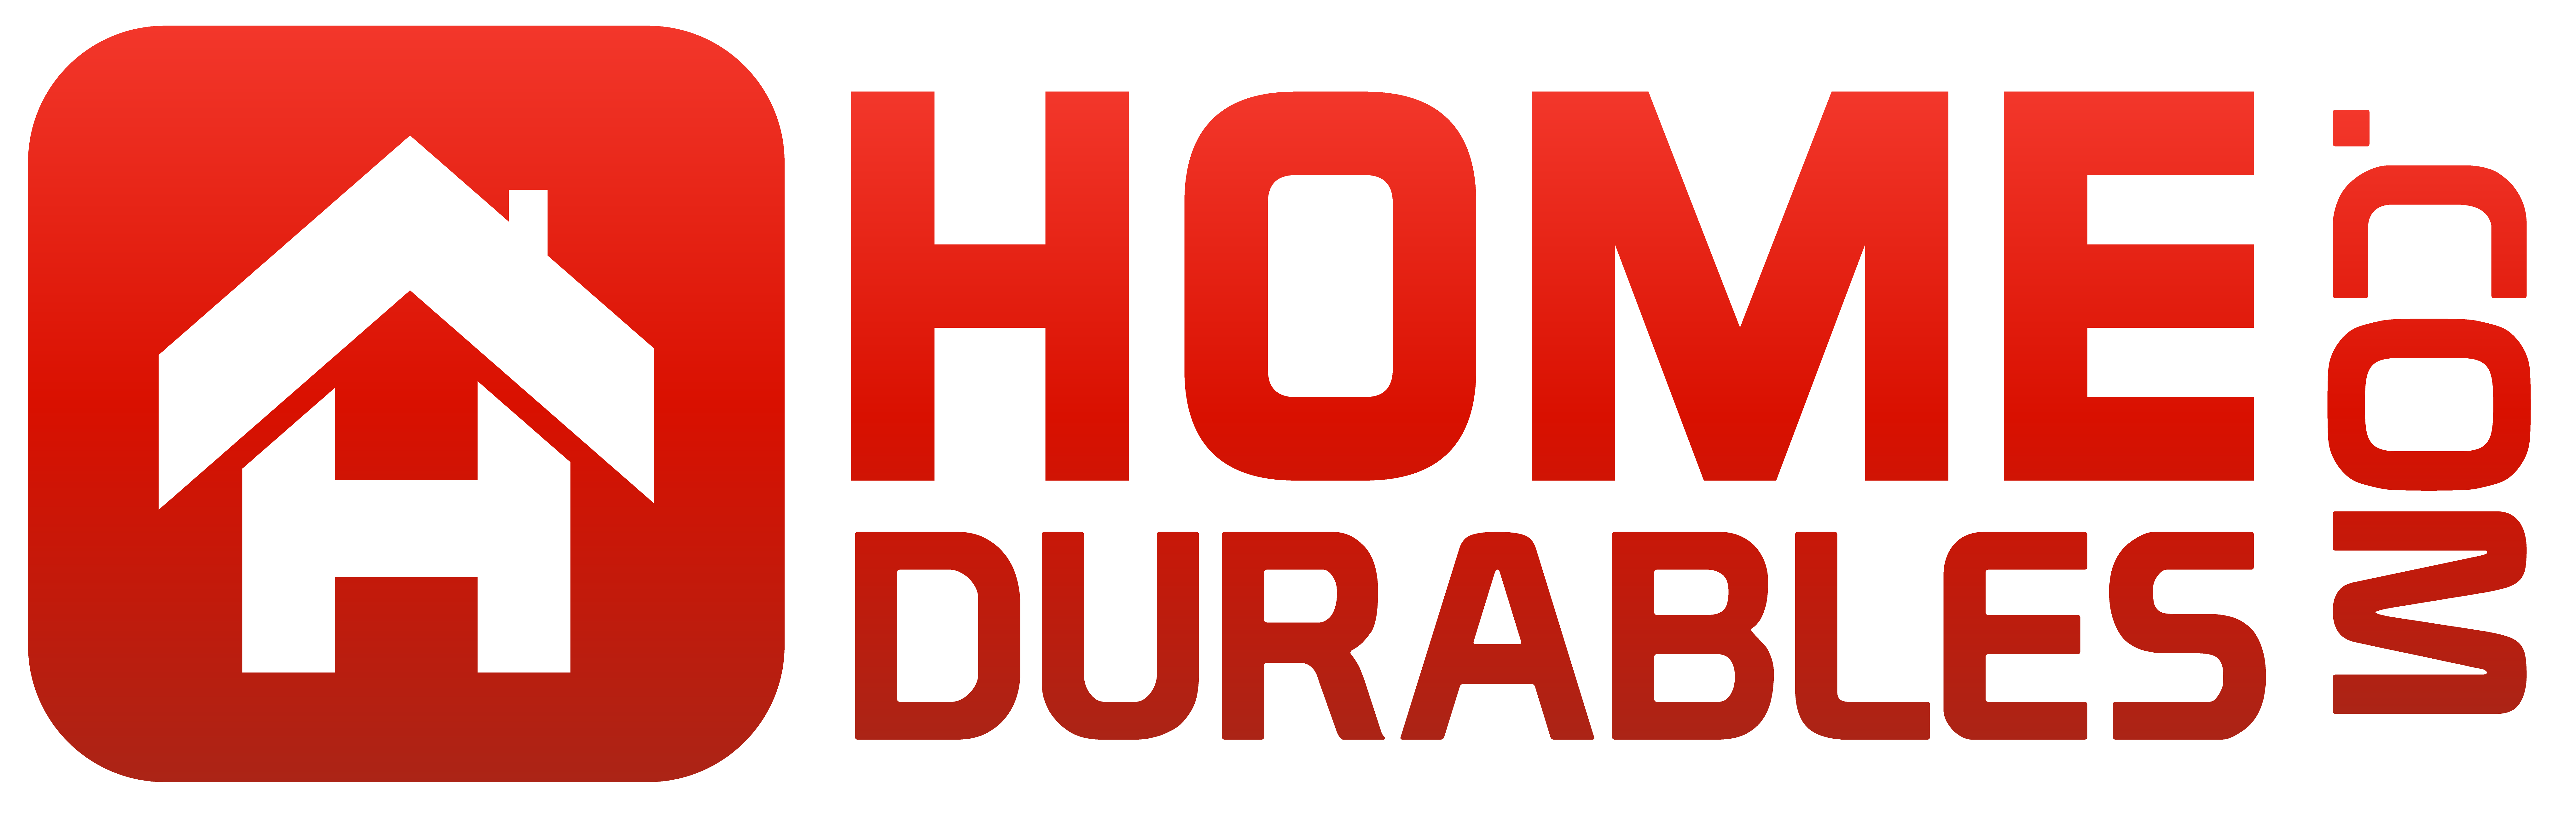 Home Durables